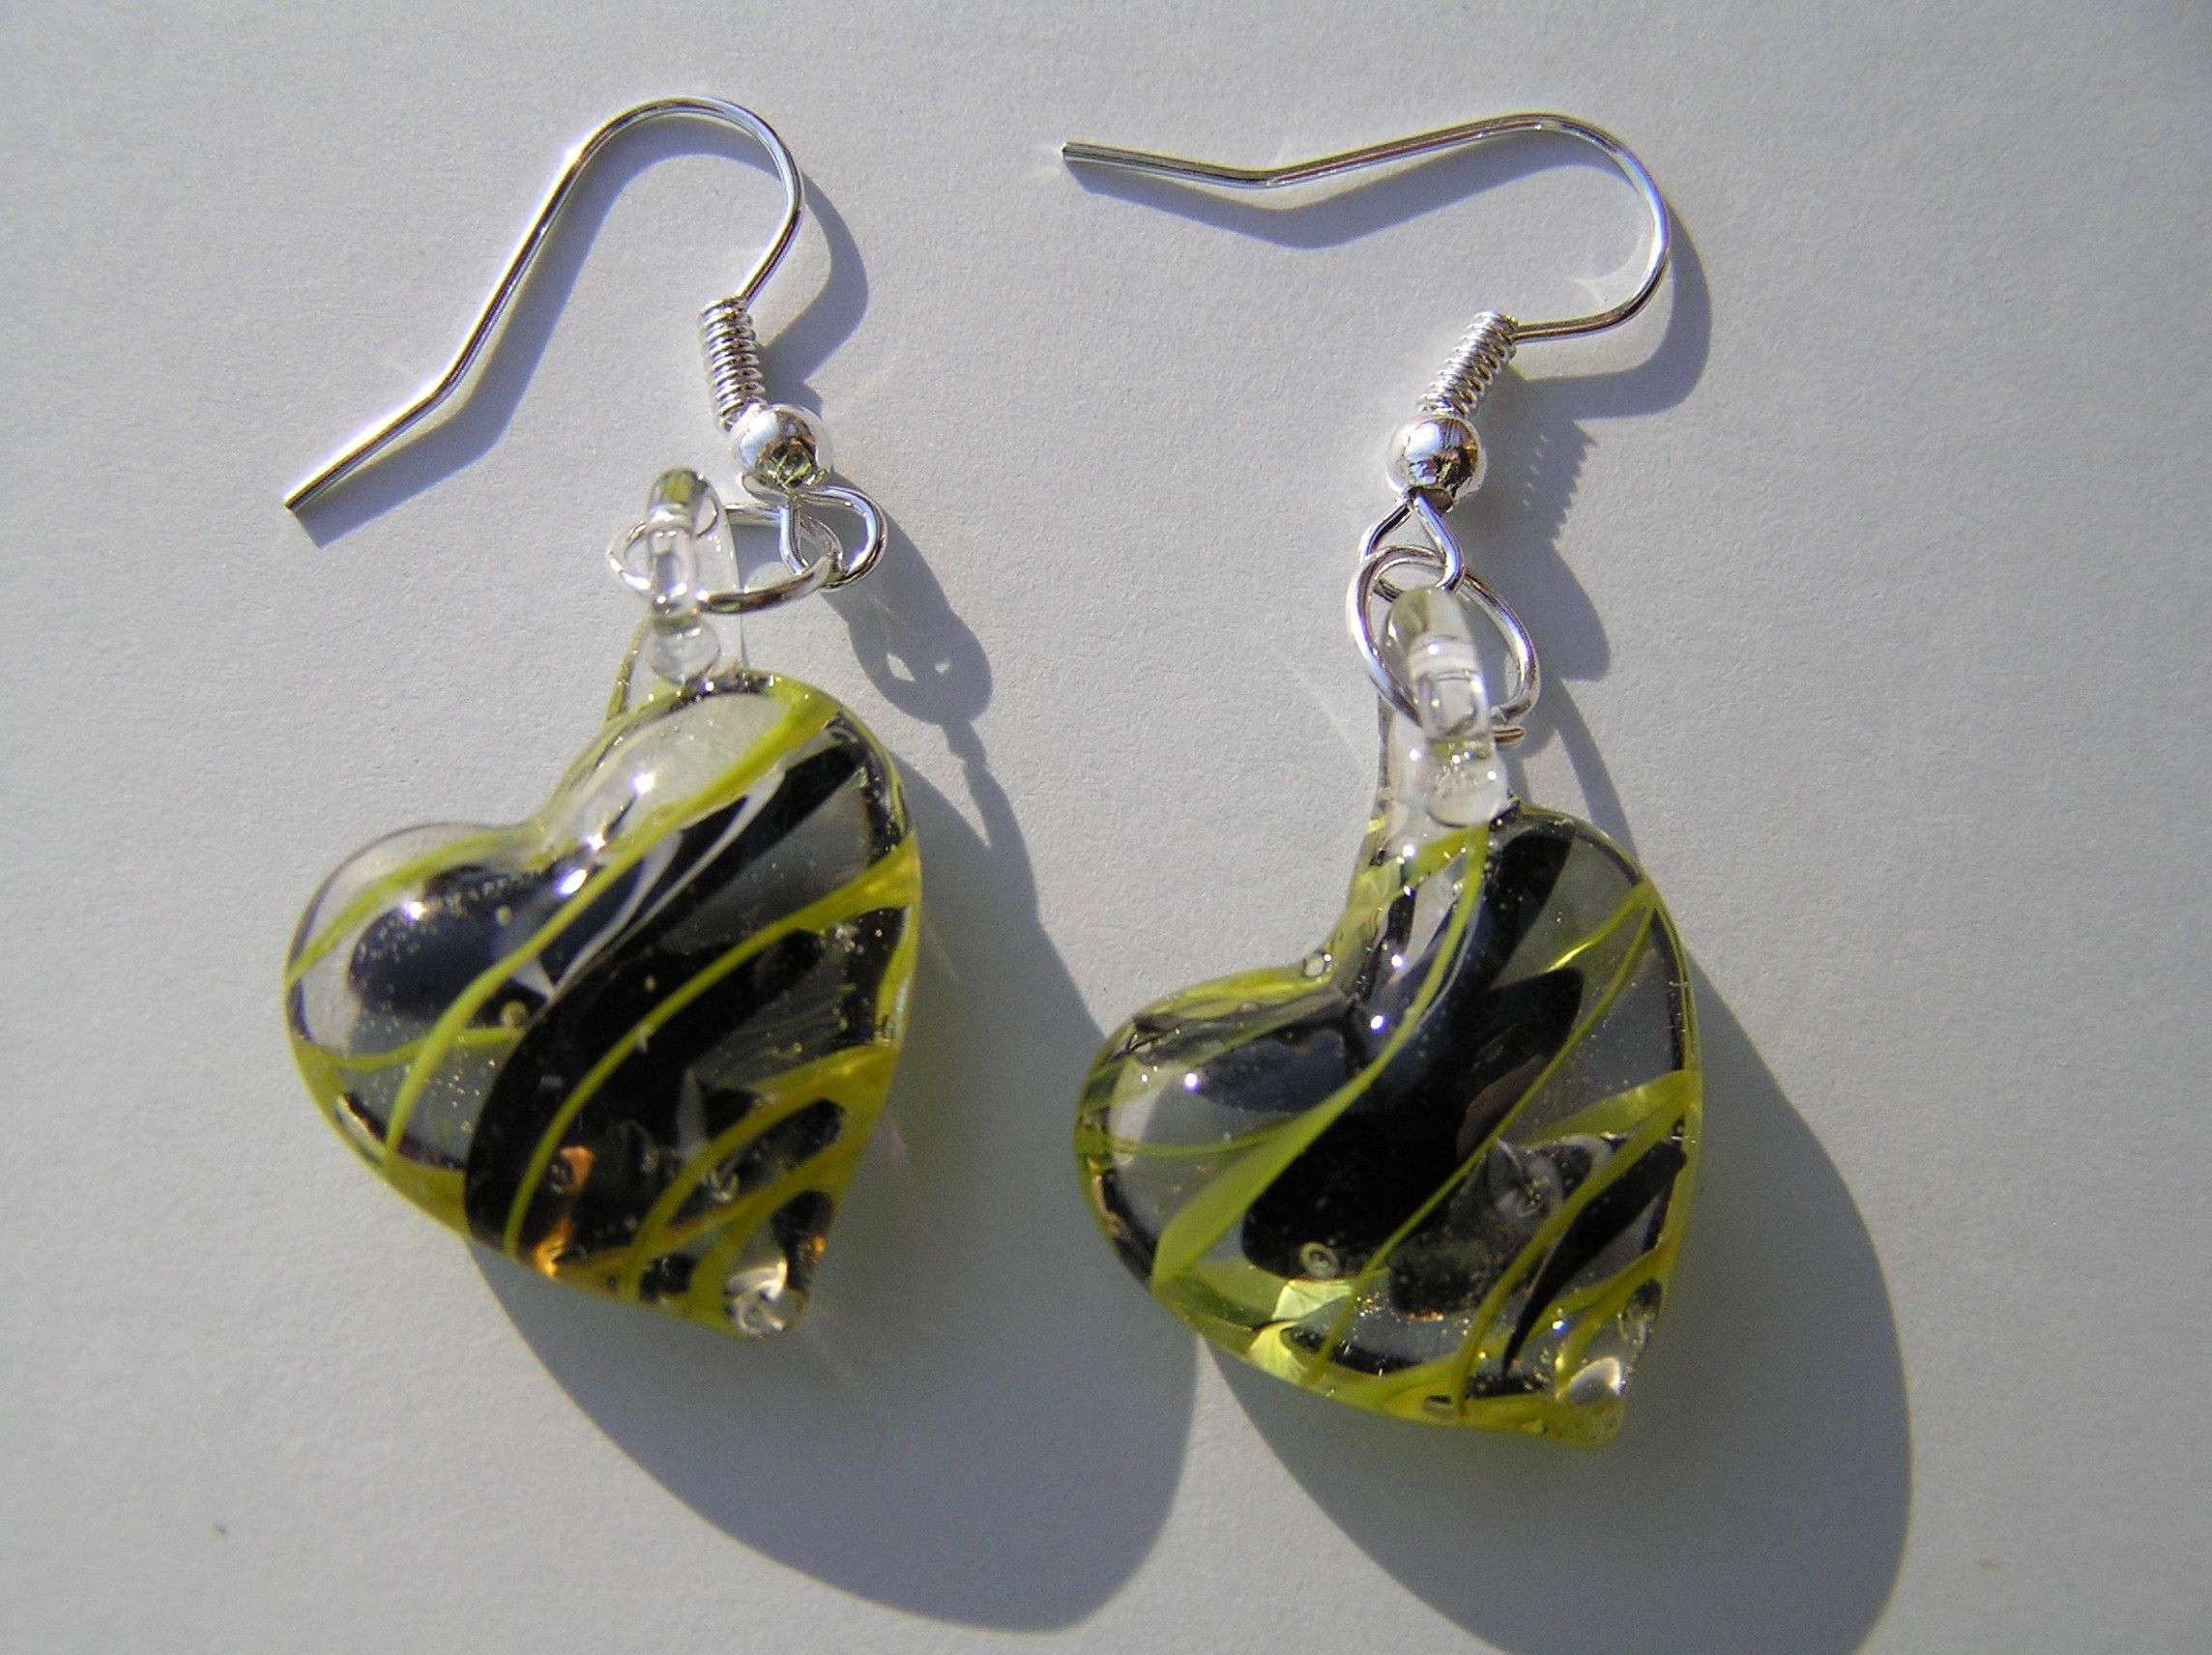 Jewelry doesn't have to be expensive to be beautiful. www.angryhippiejewelry.com